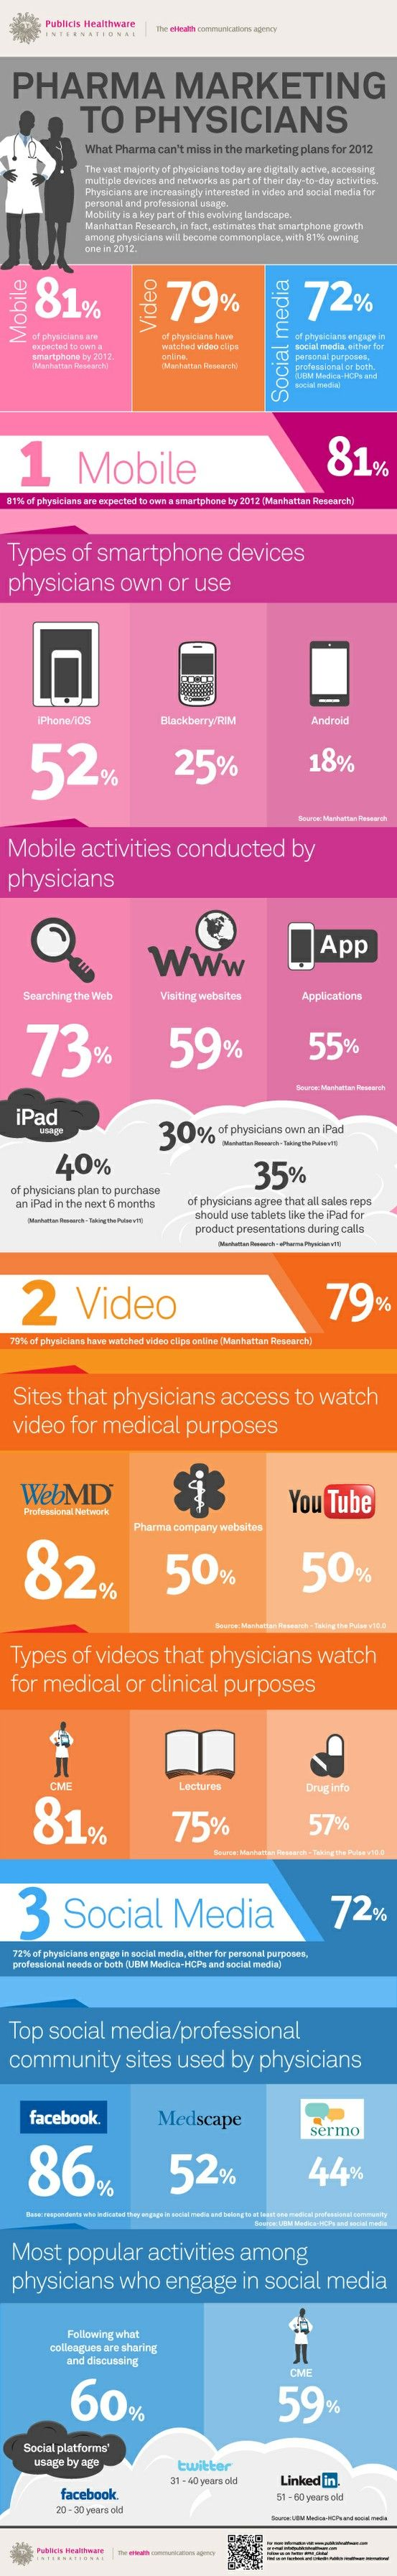 Great interesting infographic: 72% of physicians use social media for professional purposes, personal or both.